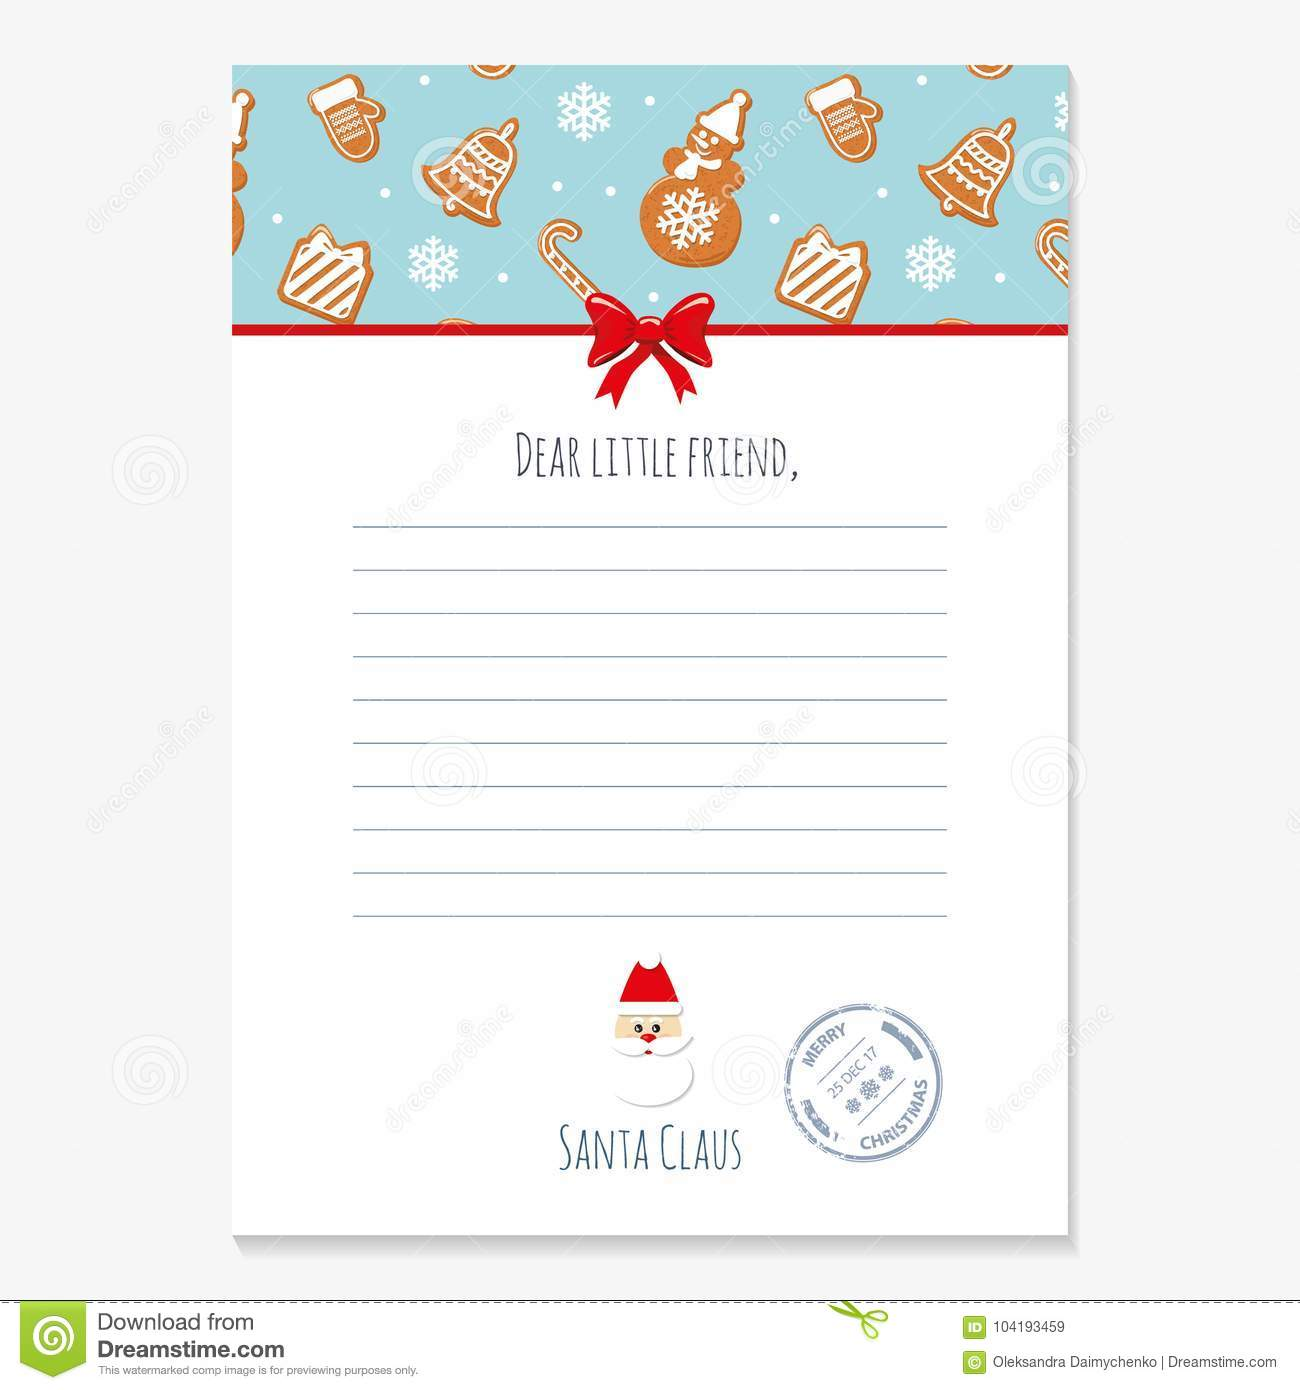 download christmas letter from santa claus template layout in a4 size pattern with gingerbread - Christmas Letter From Santa